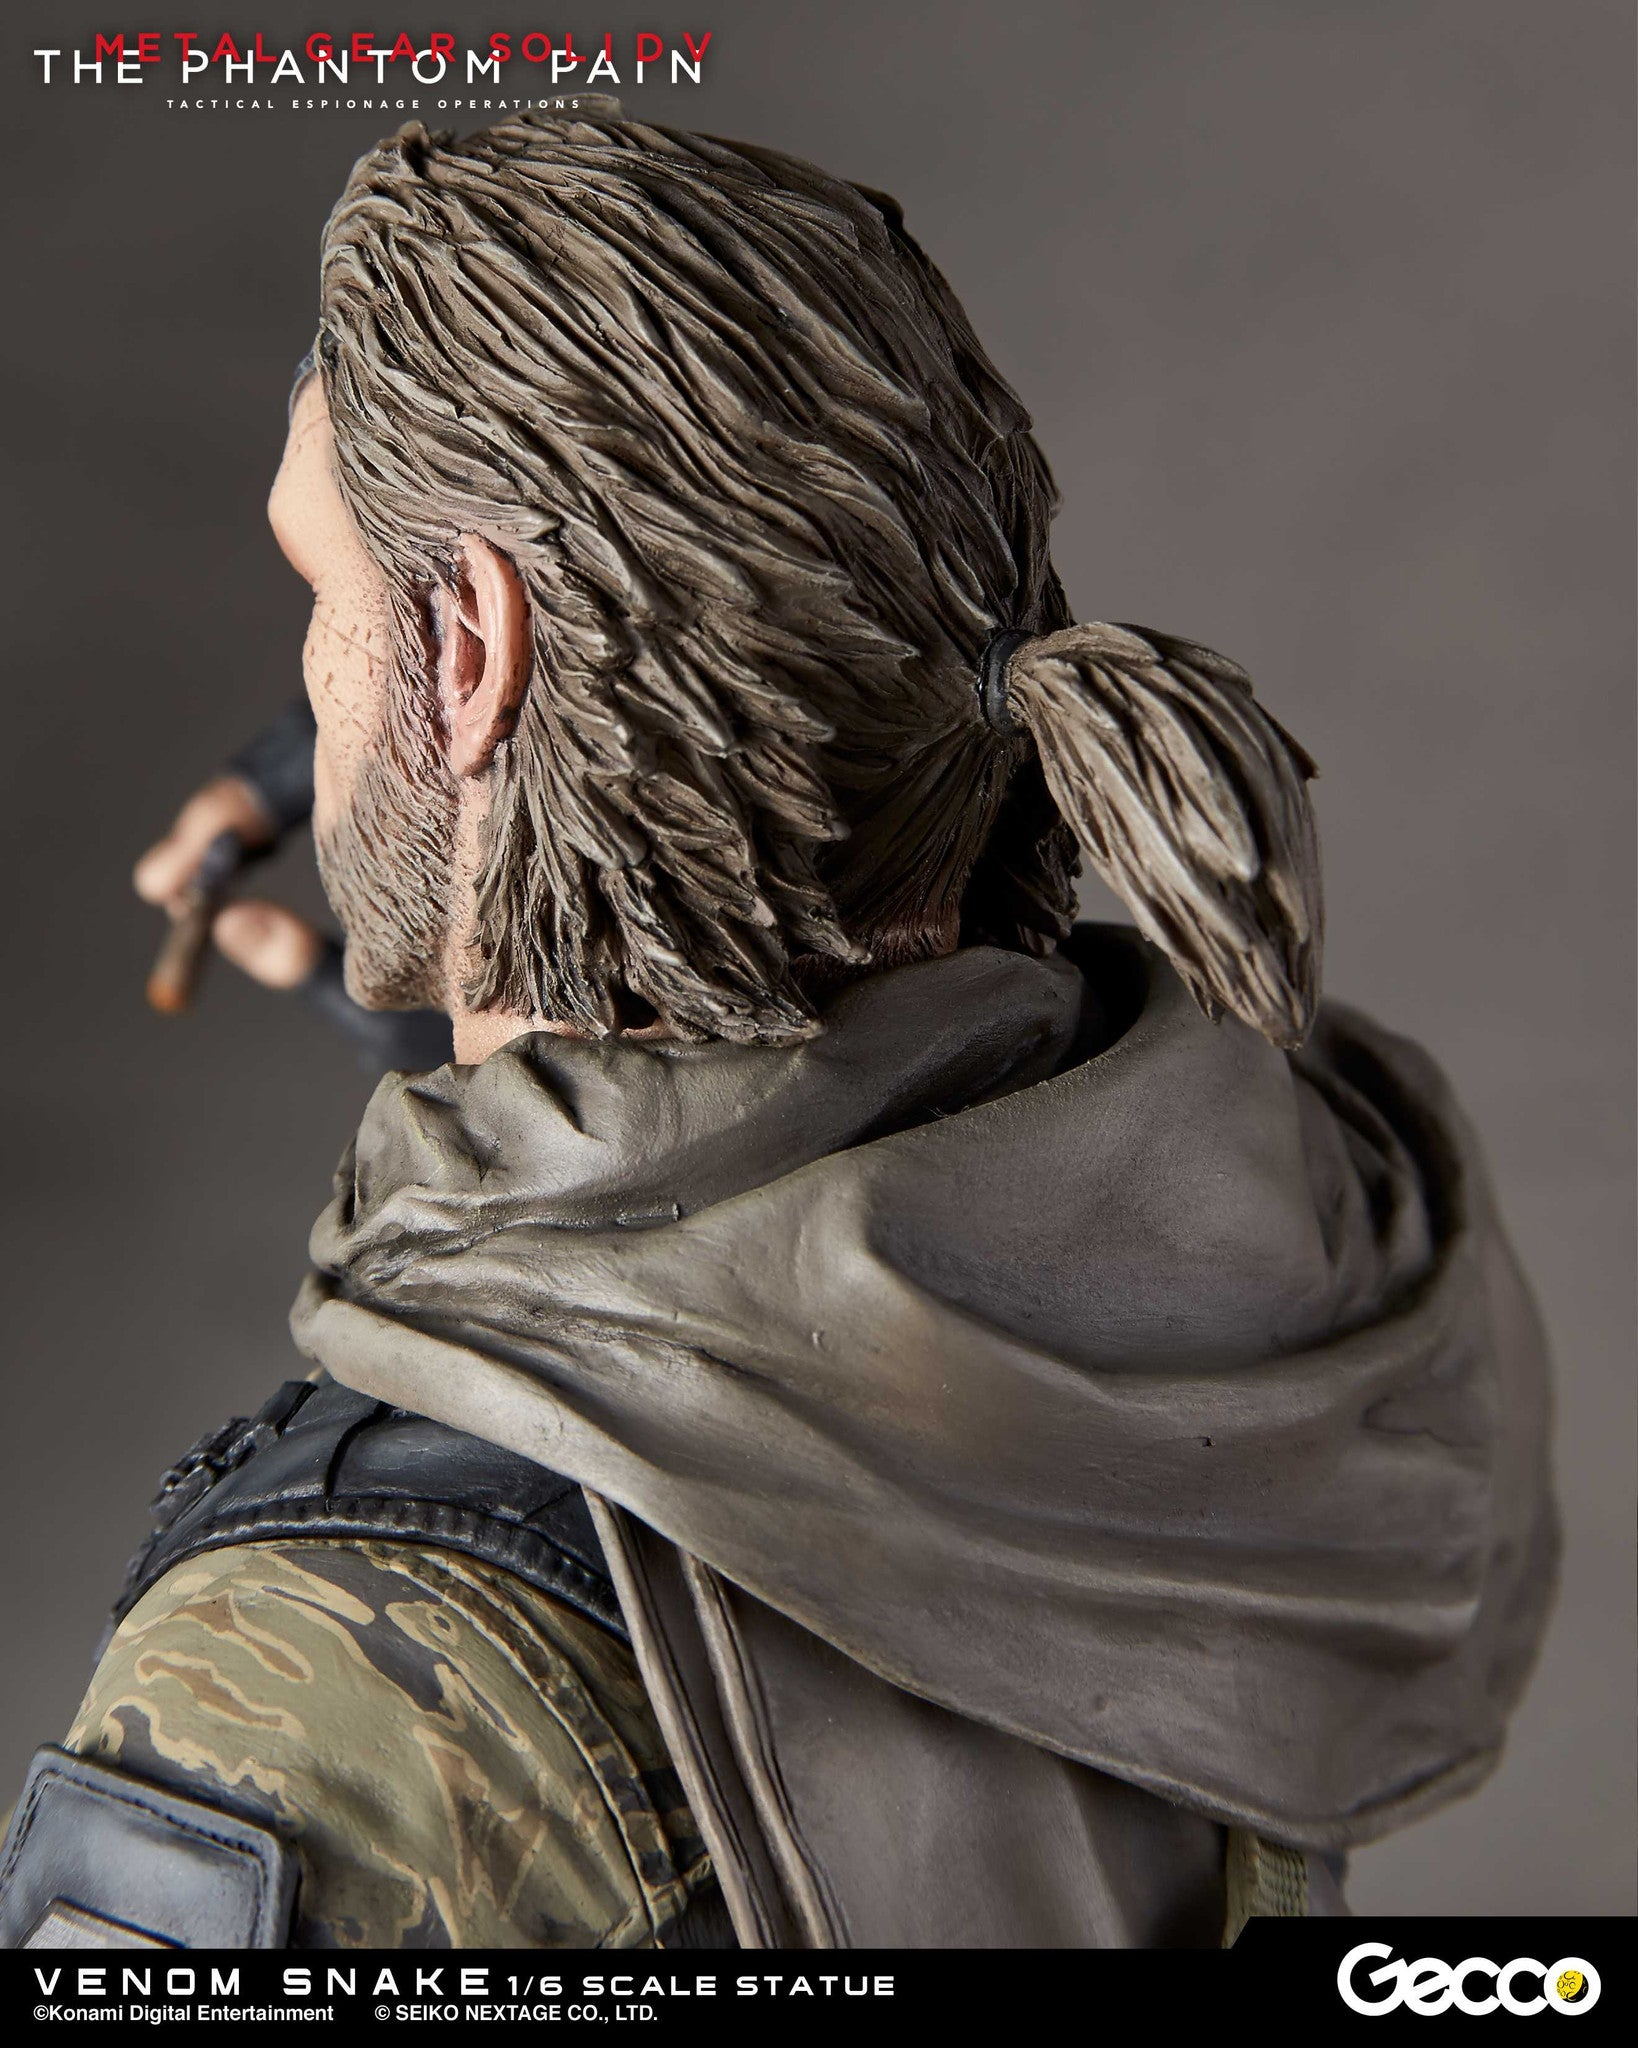 Gecco - Metal Gear Solid V: The Phantom Pain - Venom Snake 1/6 Scale Statue - Marvelous Toys - 10